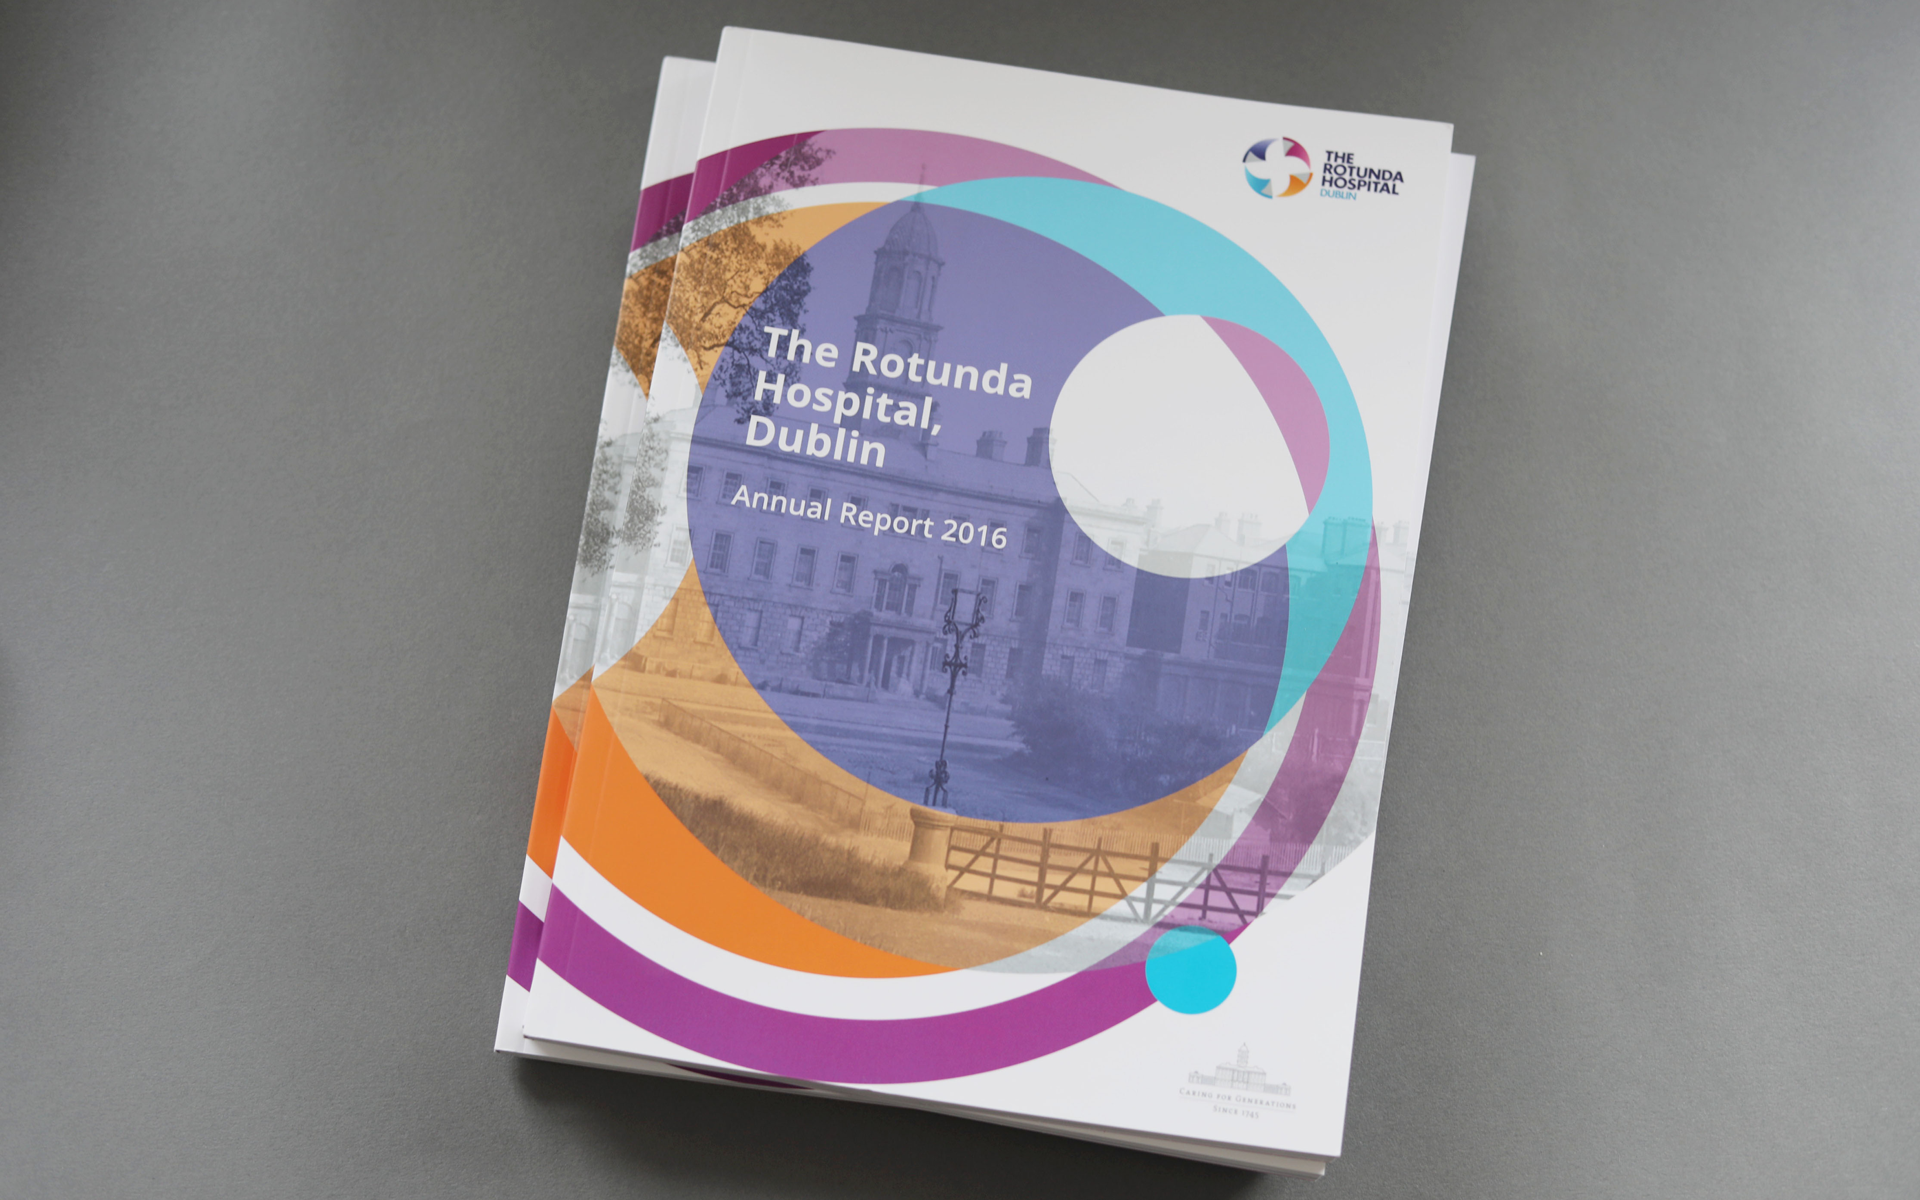 Cover image: The Rotunda Hospital Annual Report